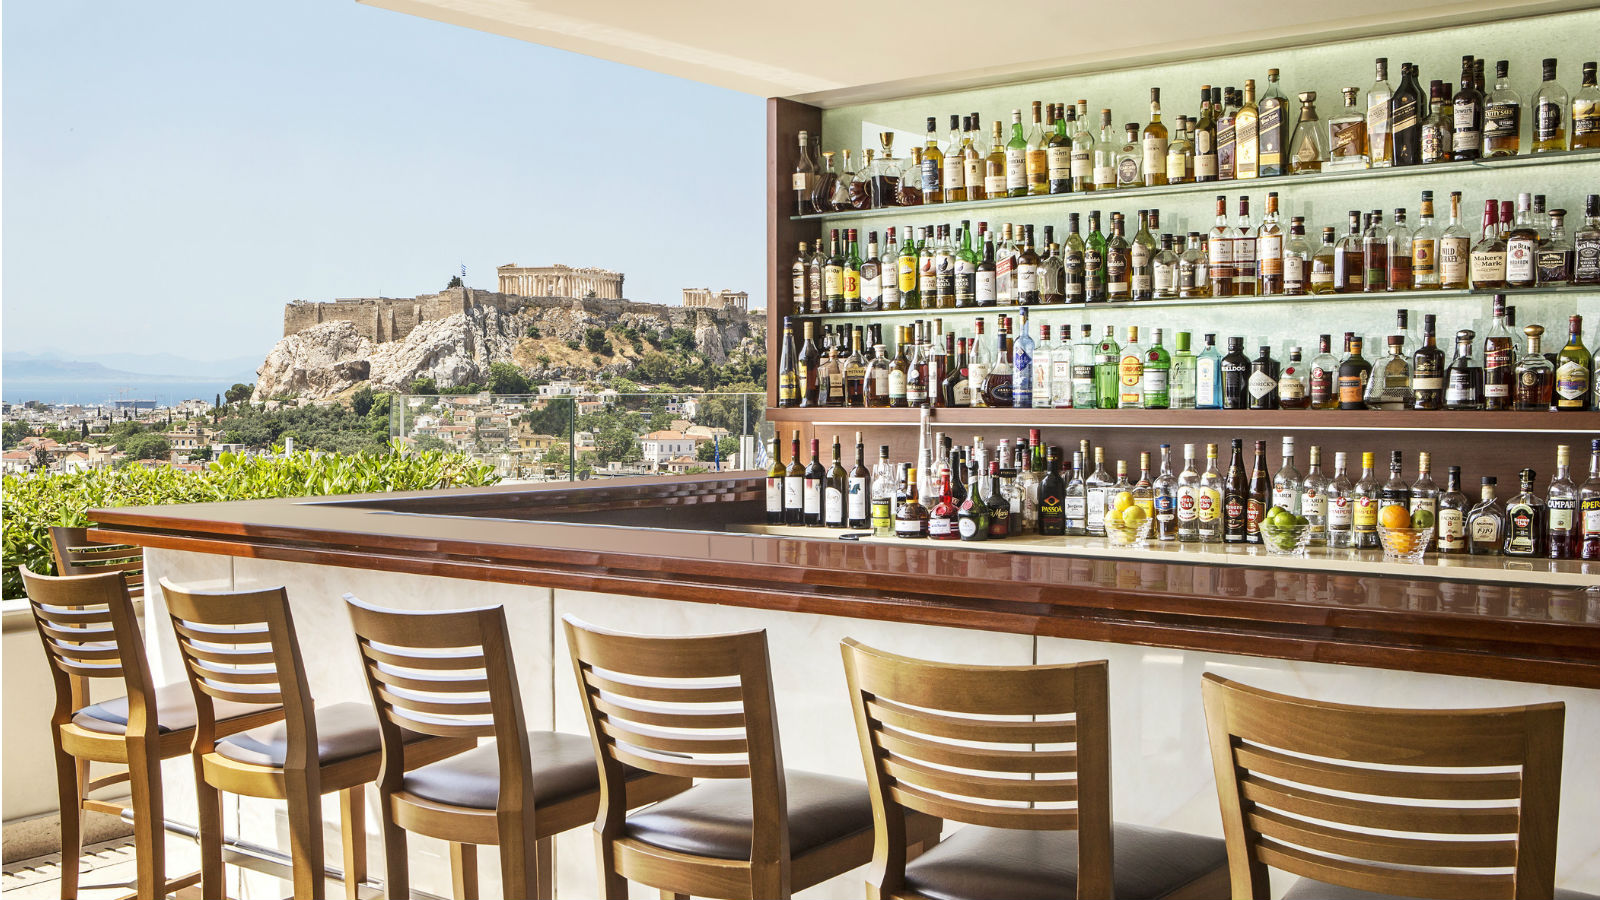 Linger over a drink or signature cocktail at the GB Roof Garden Bar, enjoying amazing views to the Acropolis - Hotel Grande Bretagne, Athens